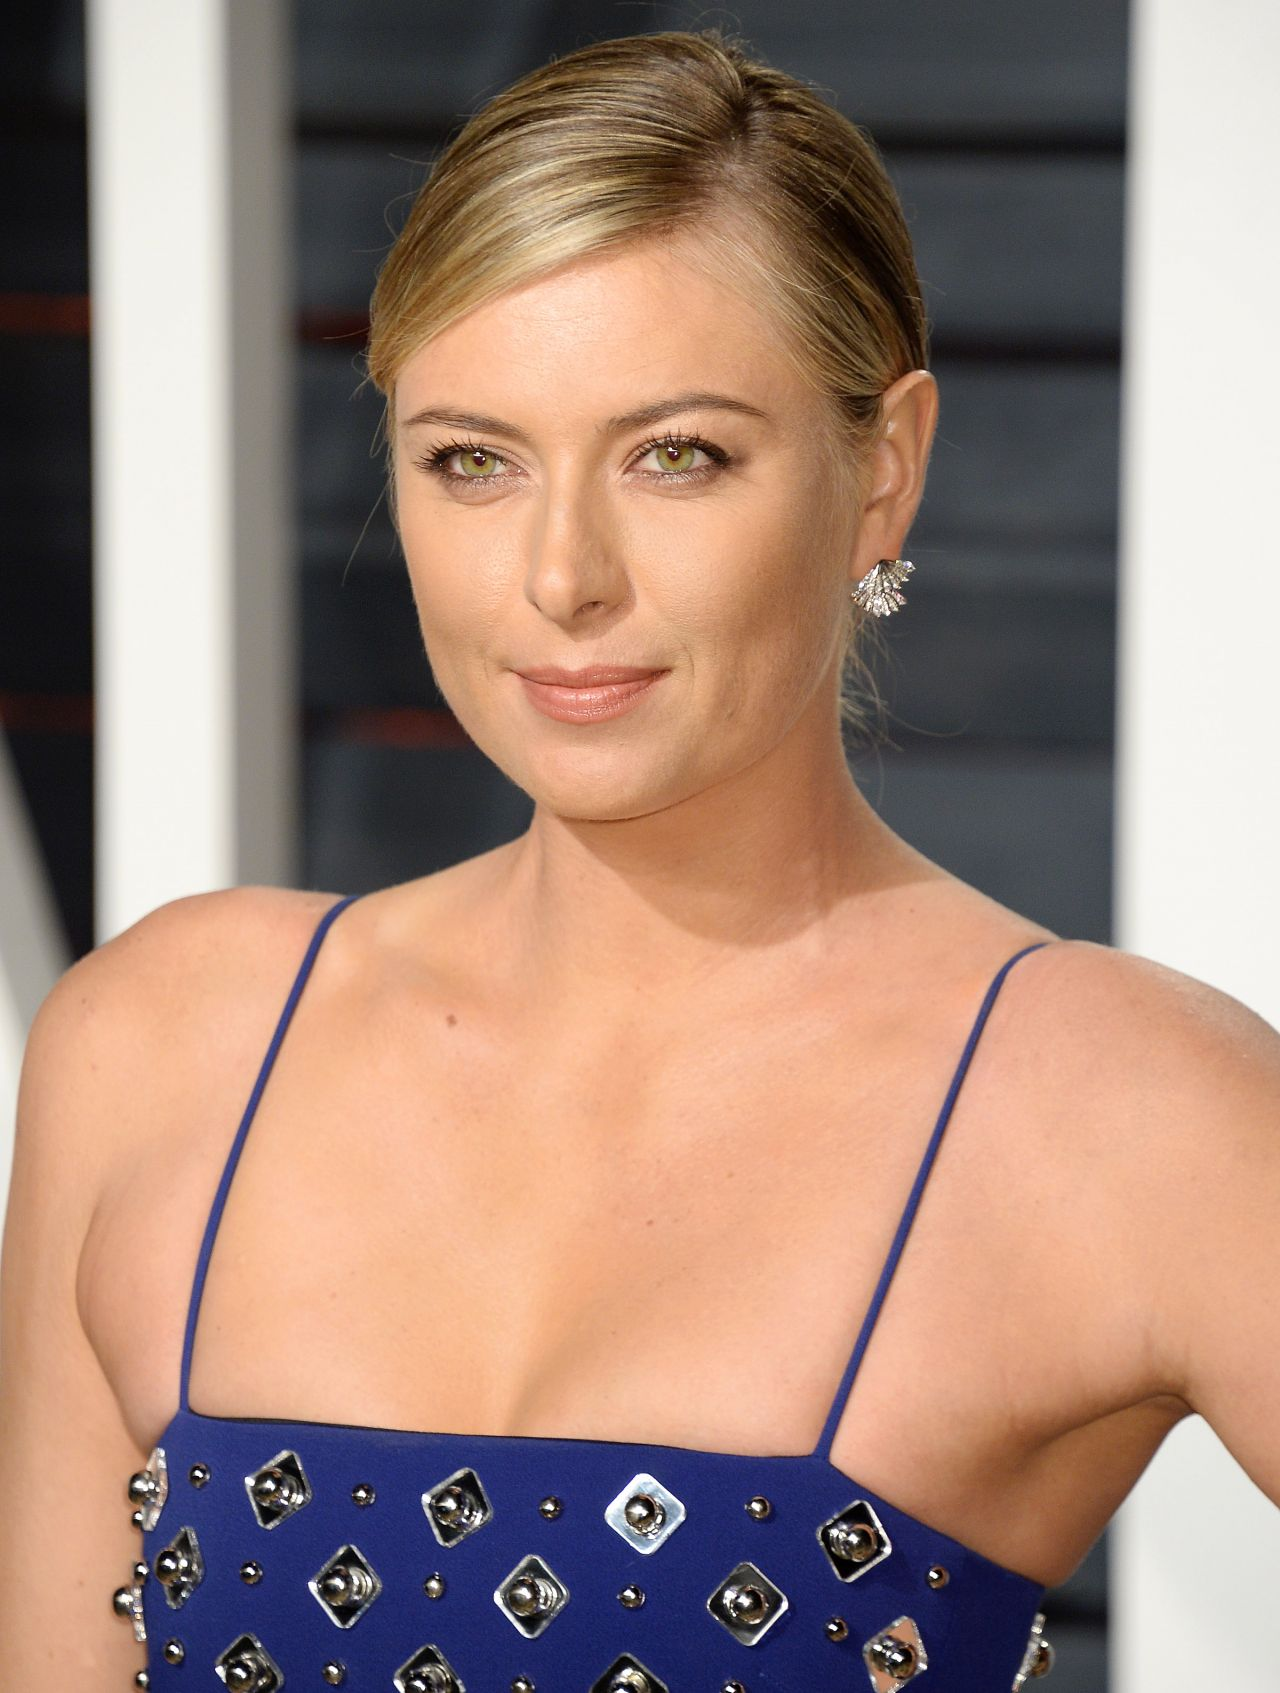 Maria Sharapova at Vanity Fair Oscar 2017 Party in Los Angeles